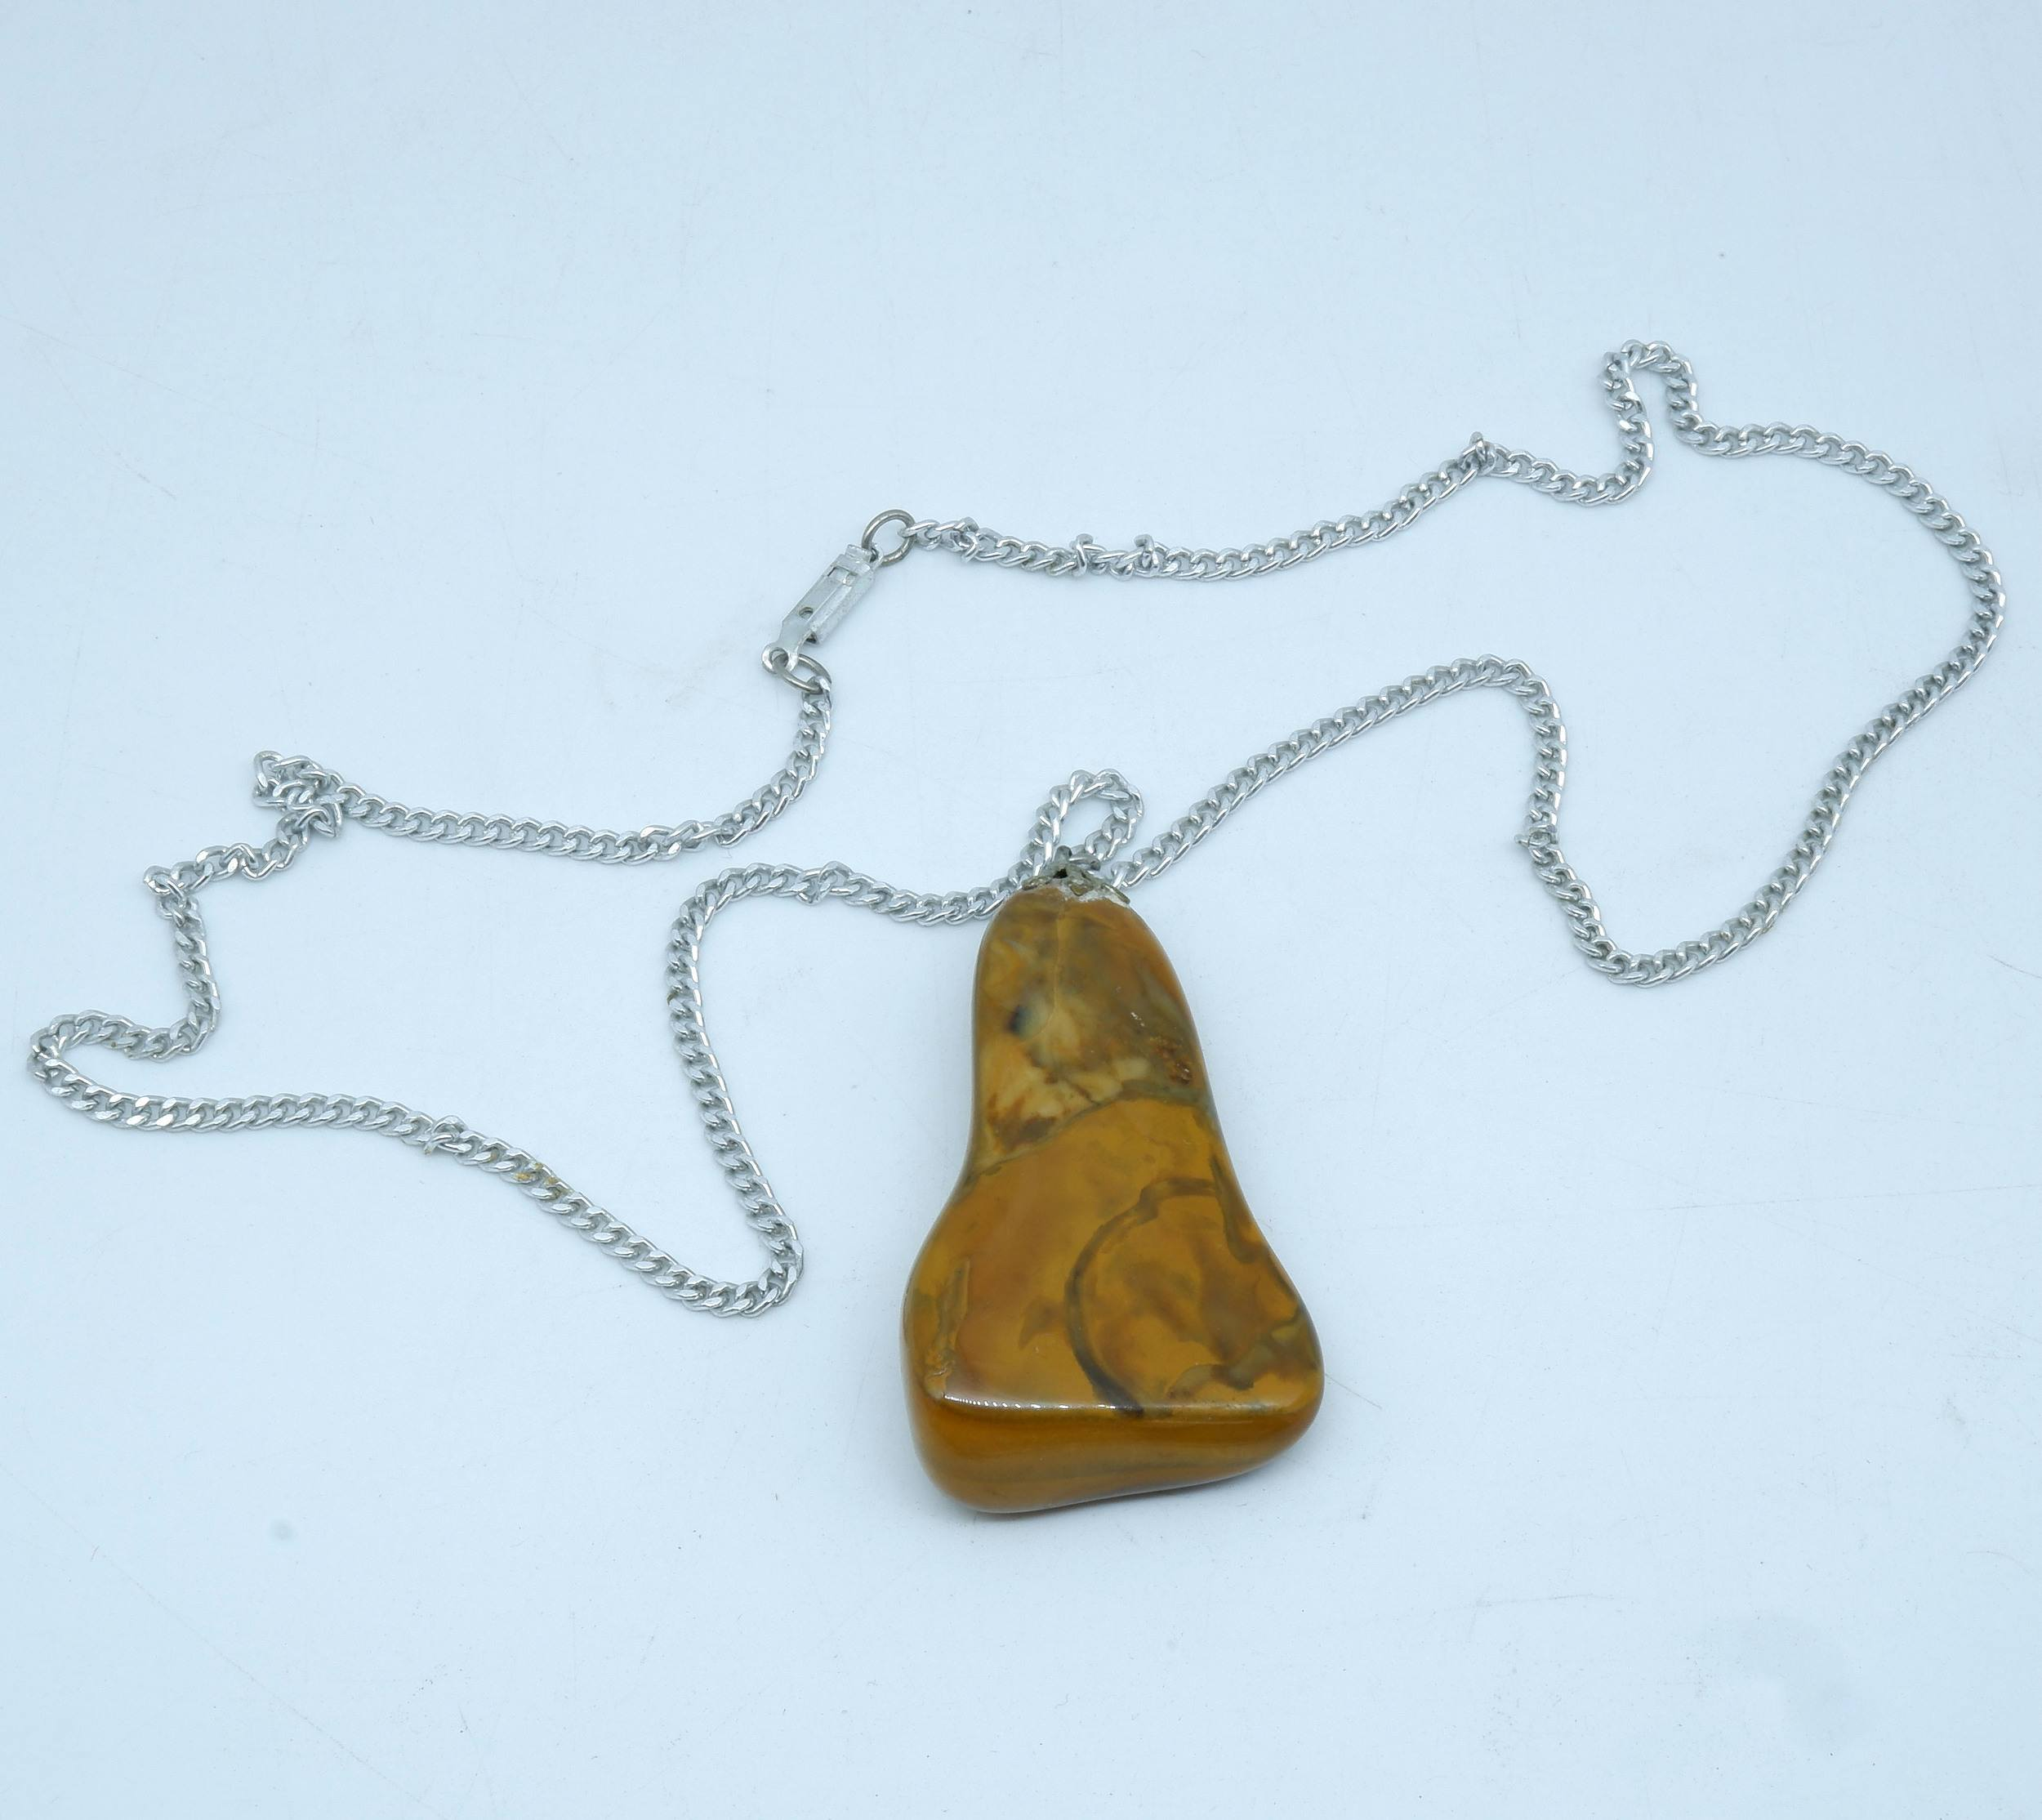 'Aboriginal Polished Stone on Silver Chain, Made by Post-Primary Class at Papunya'